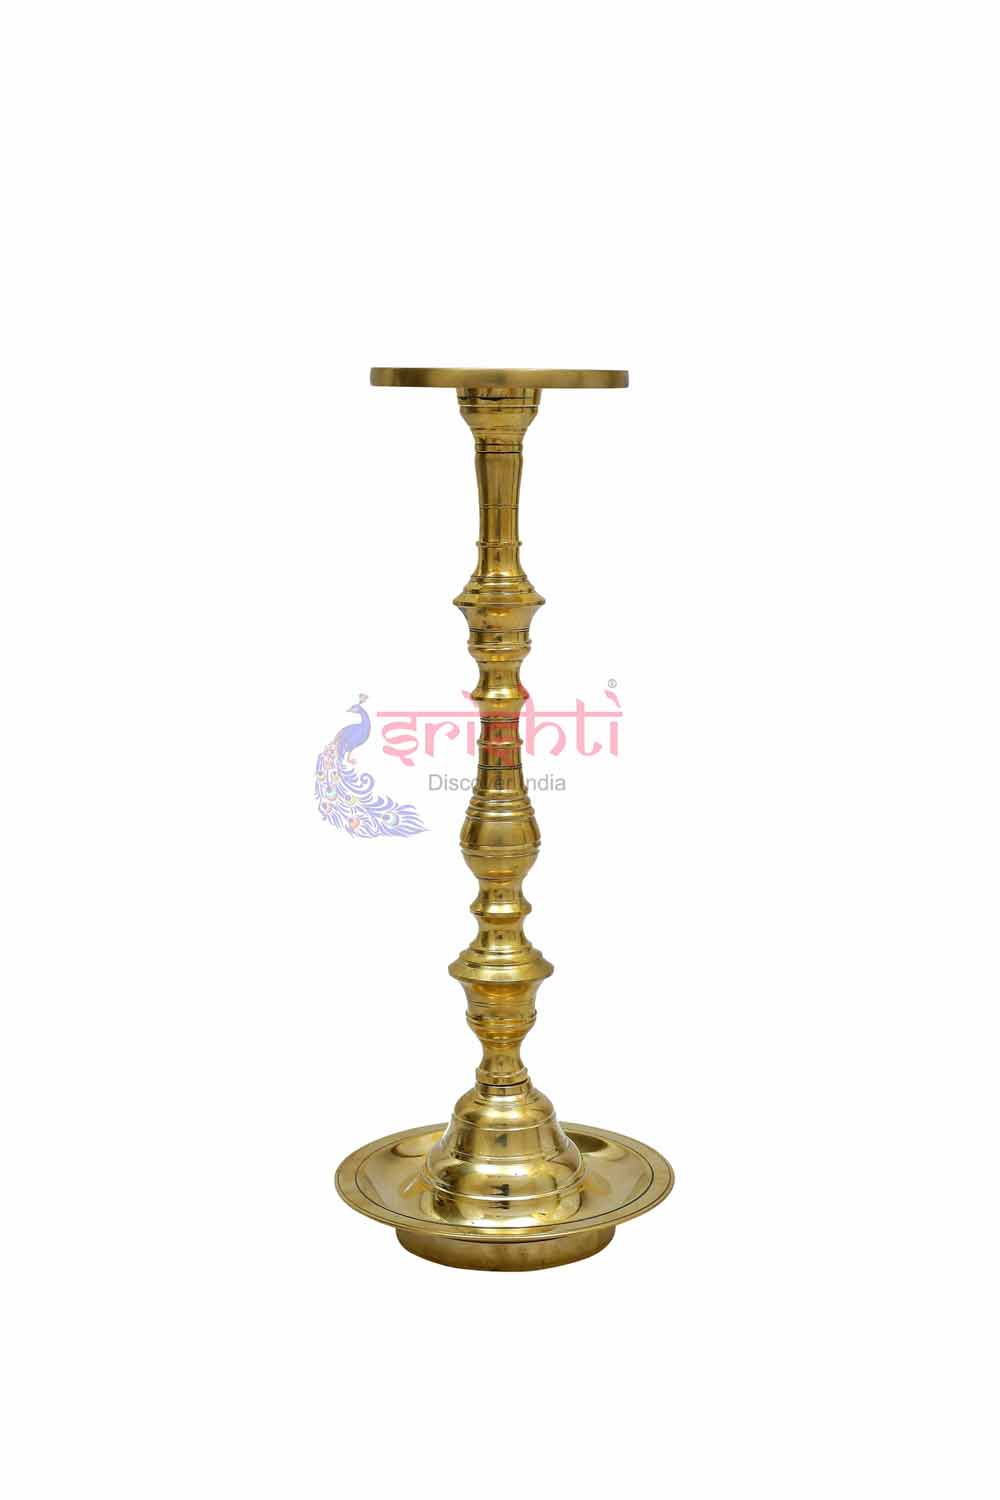 SKBU-Brass Multipurpose stand-15 Inches